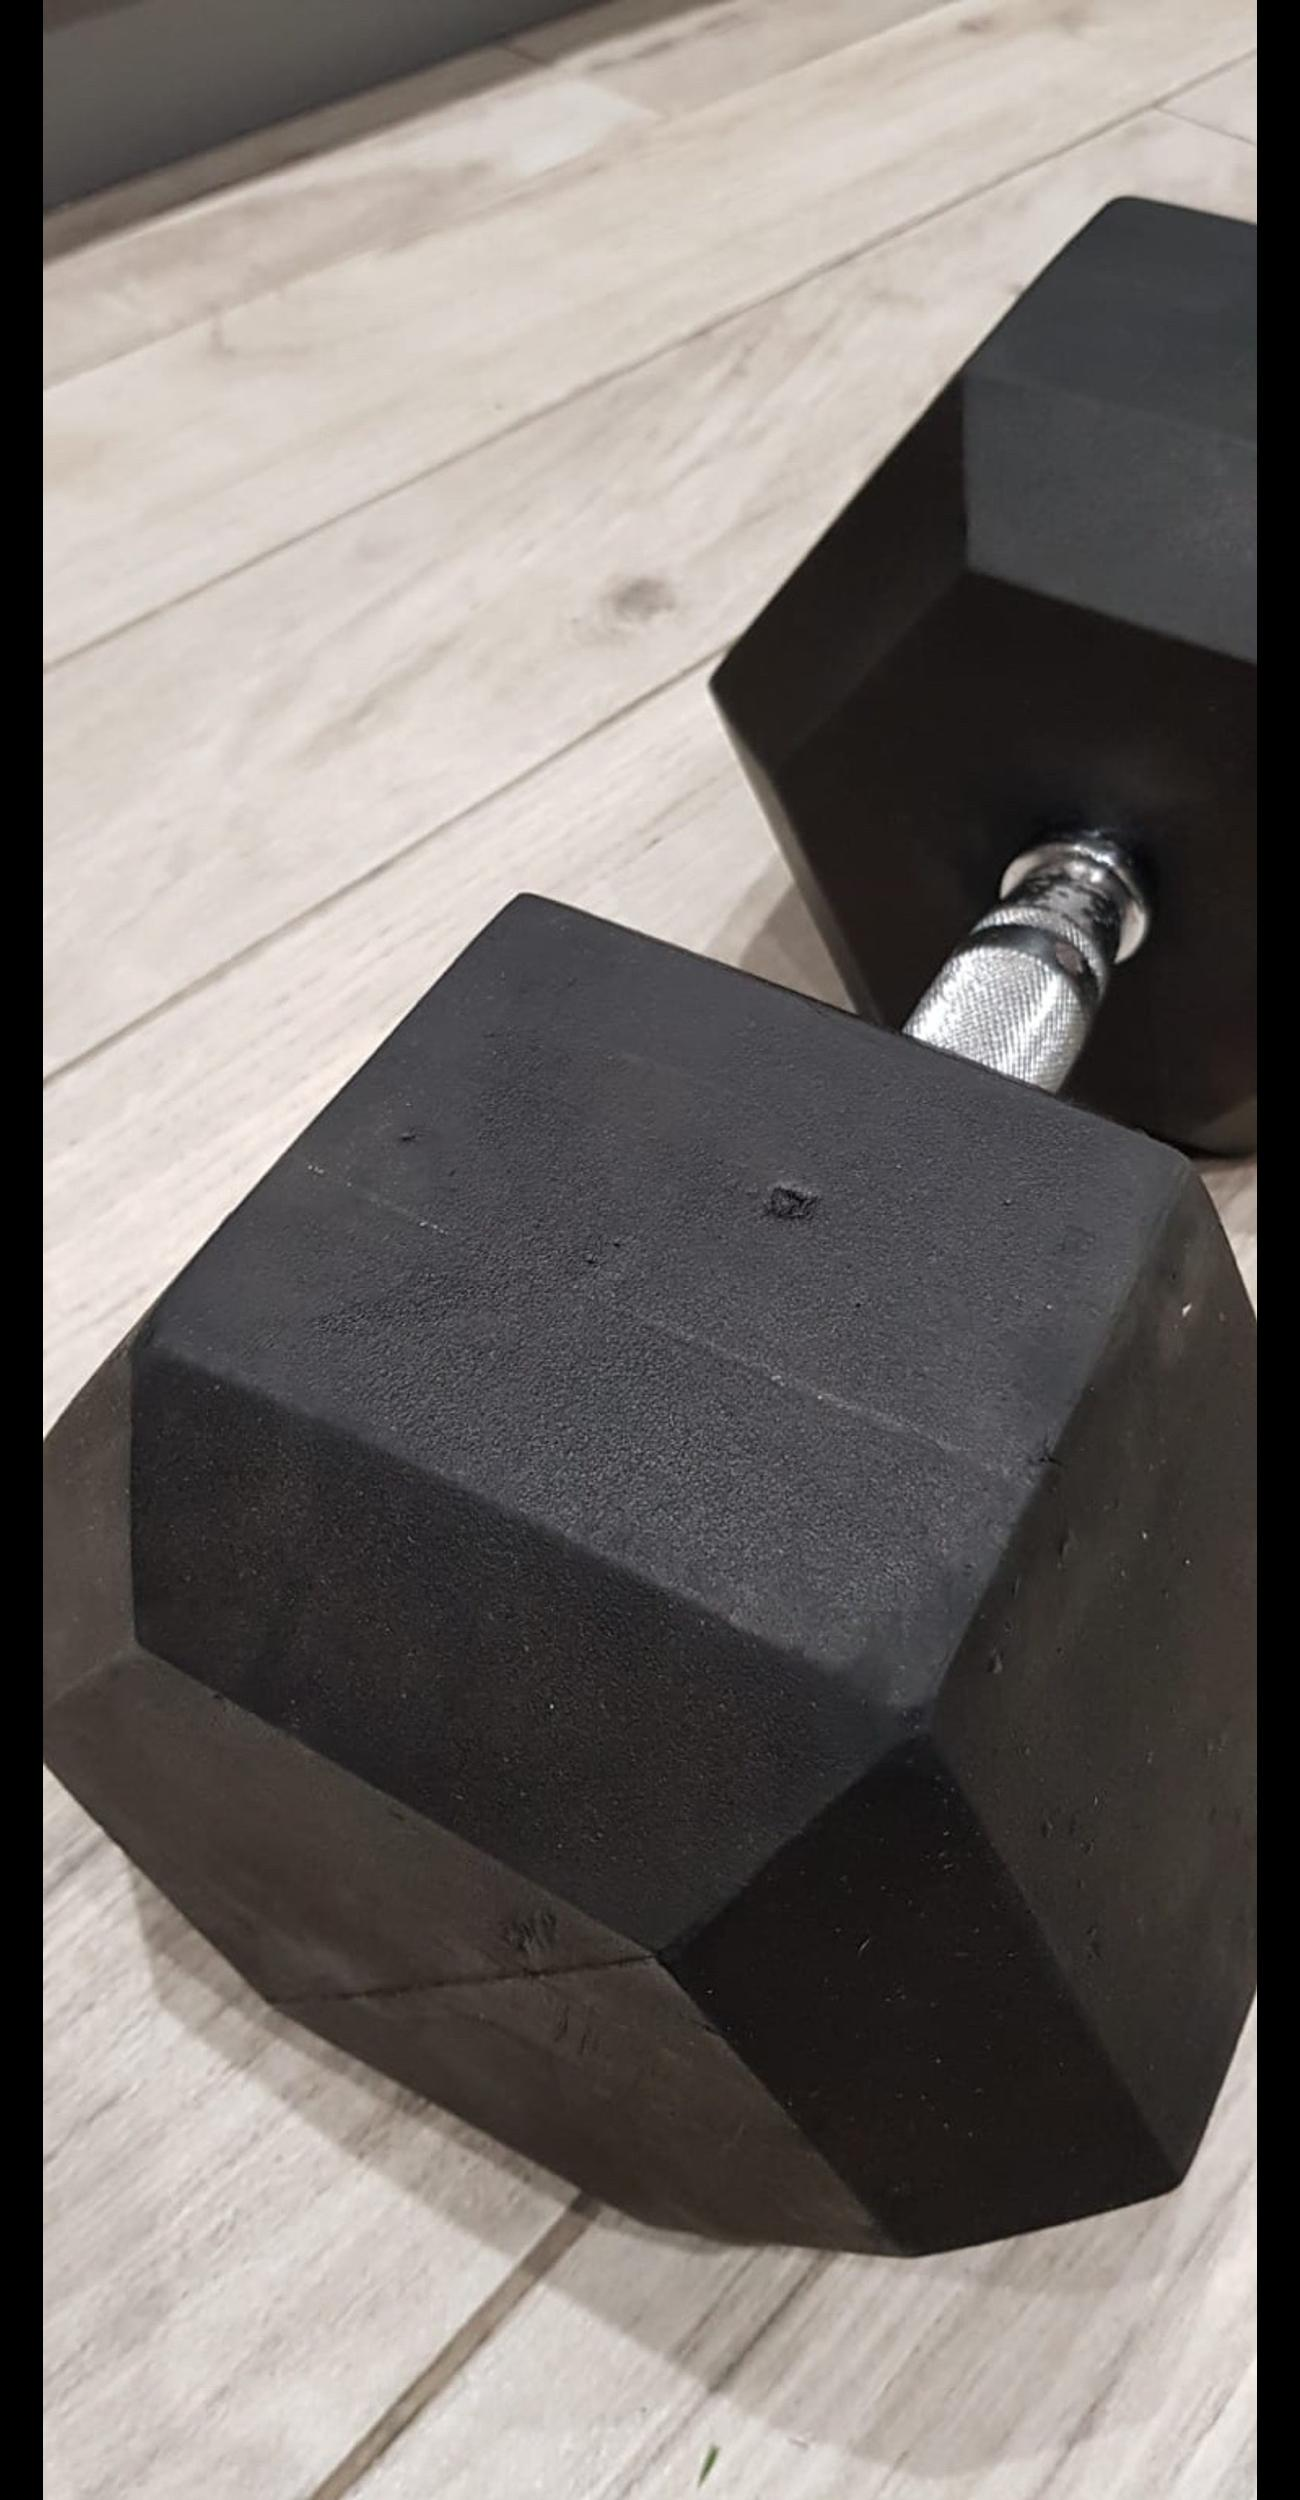 2 weights in good condition. Hex dumbells 50kg each. Some marks and scuffs and a small amount of surface rust on one grip. These cost over £200 new. Collection only from Welwyn Garden City.